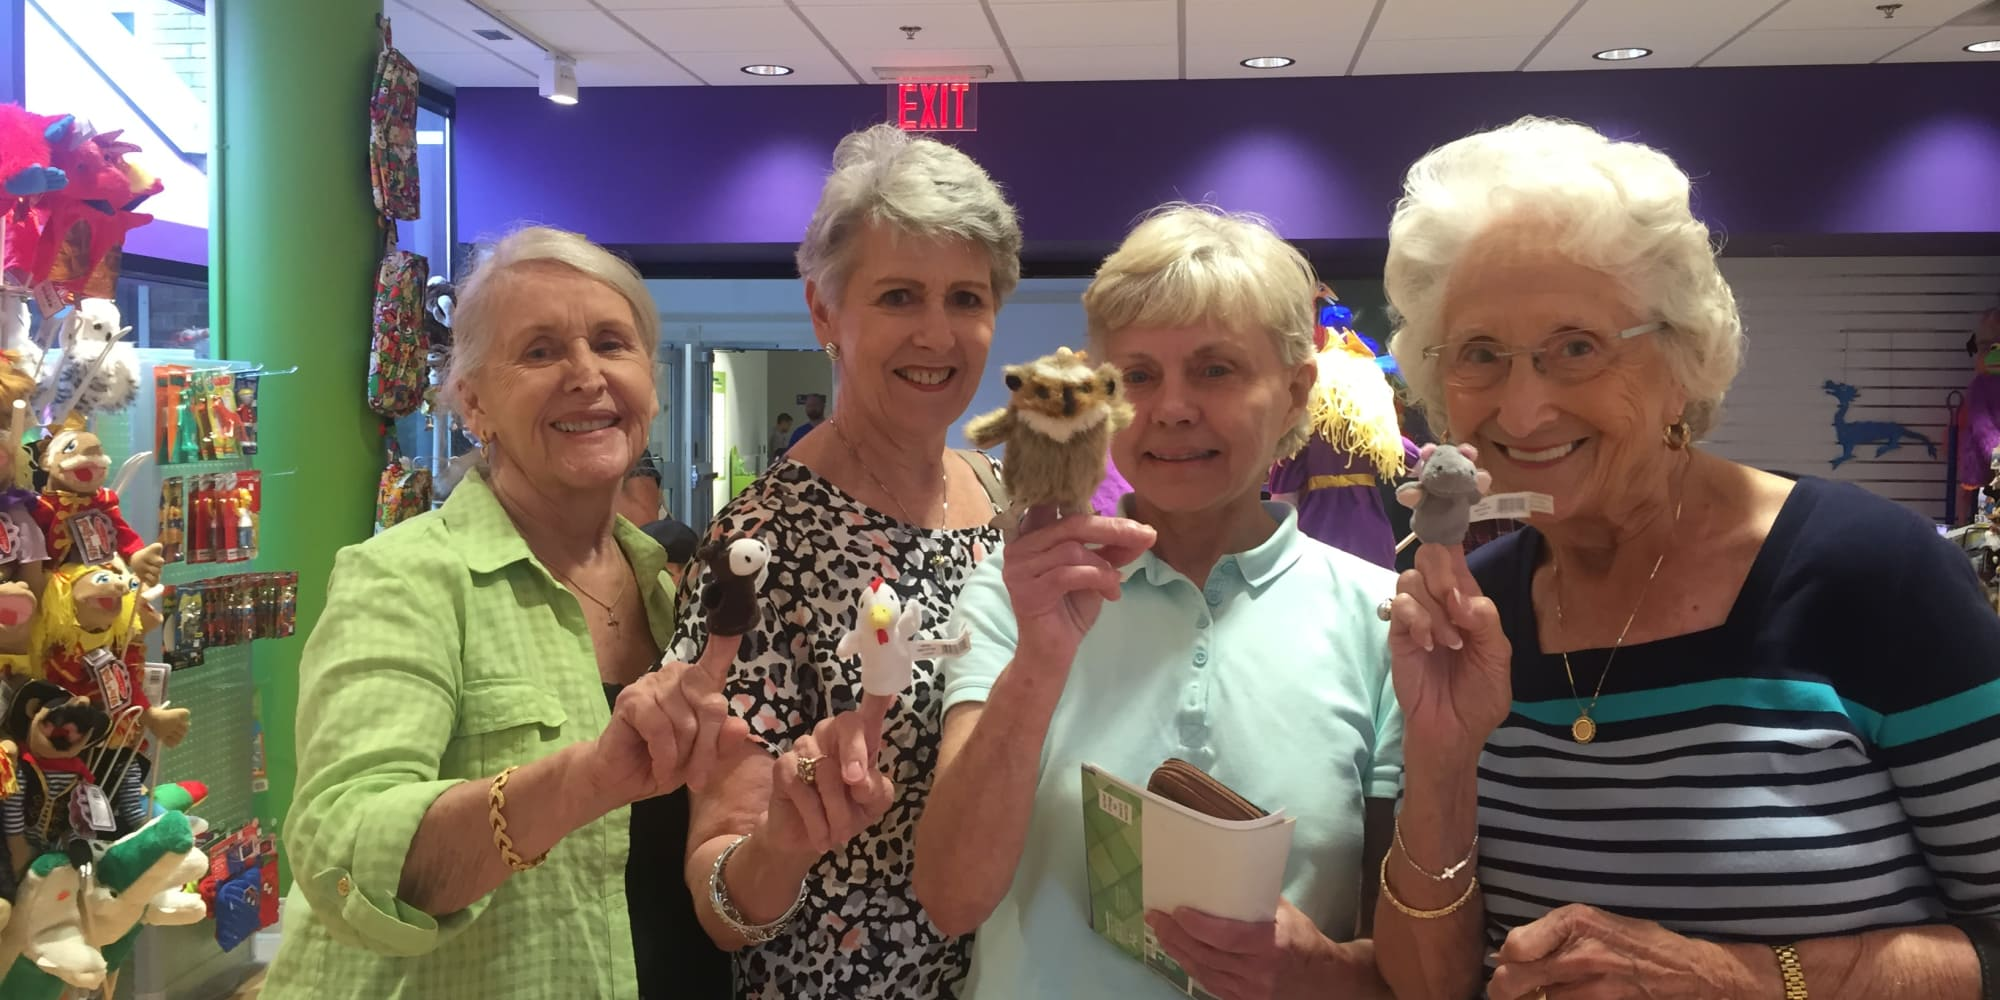 A group of residents from The Highlands Gracious Retirement Living in Westborough, Massachusetts with finger puppets in a store